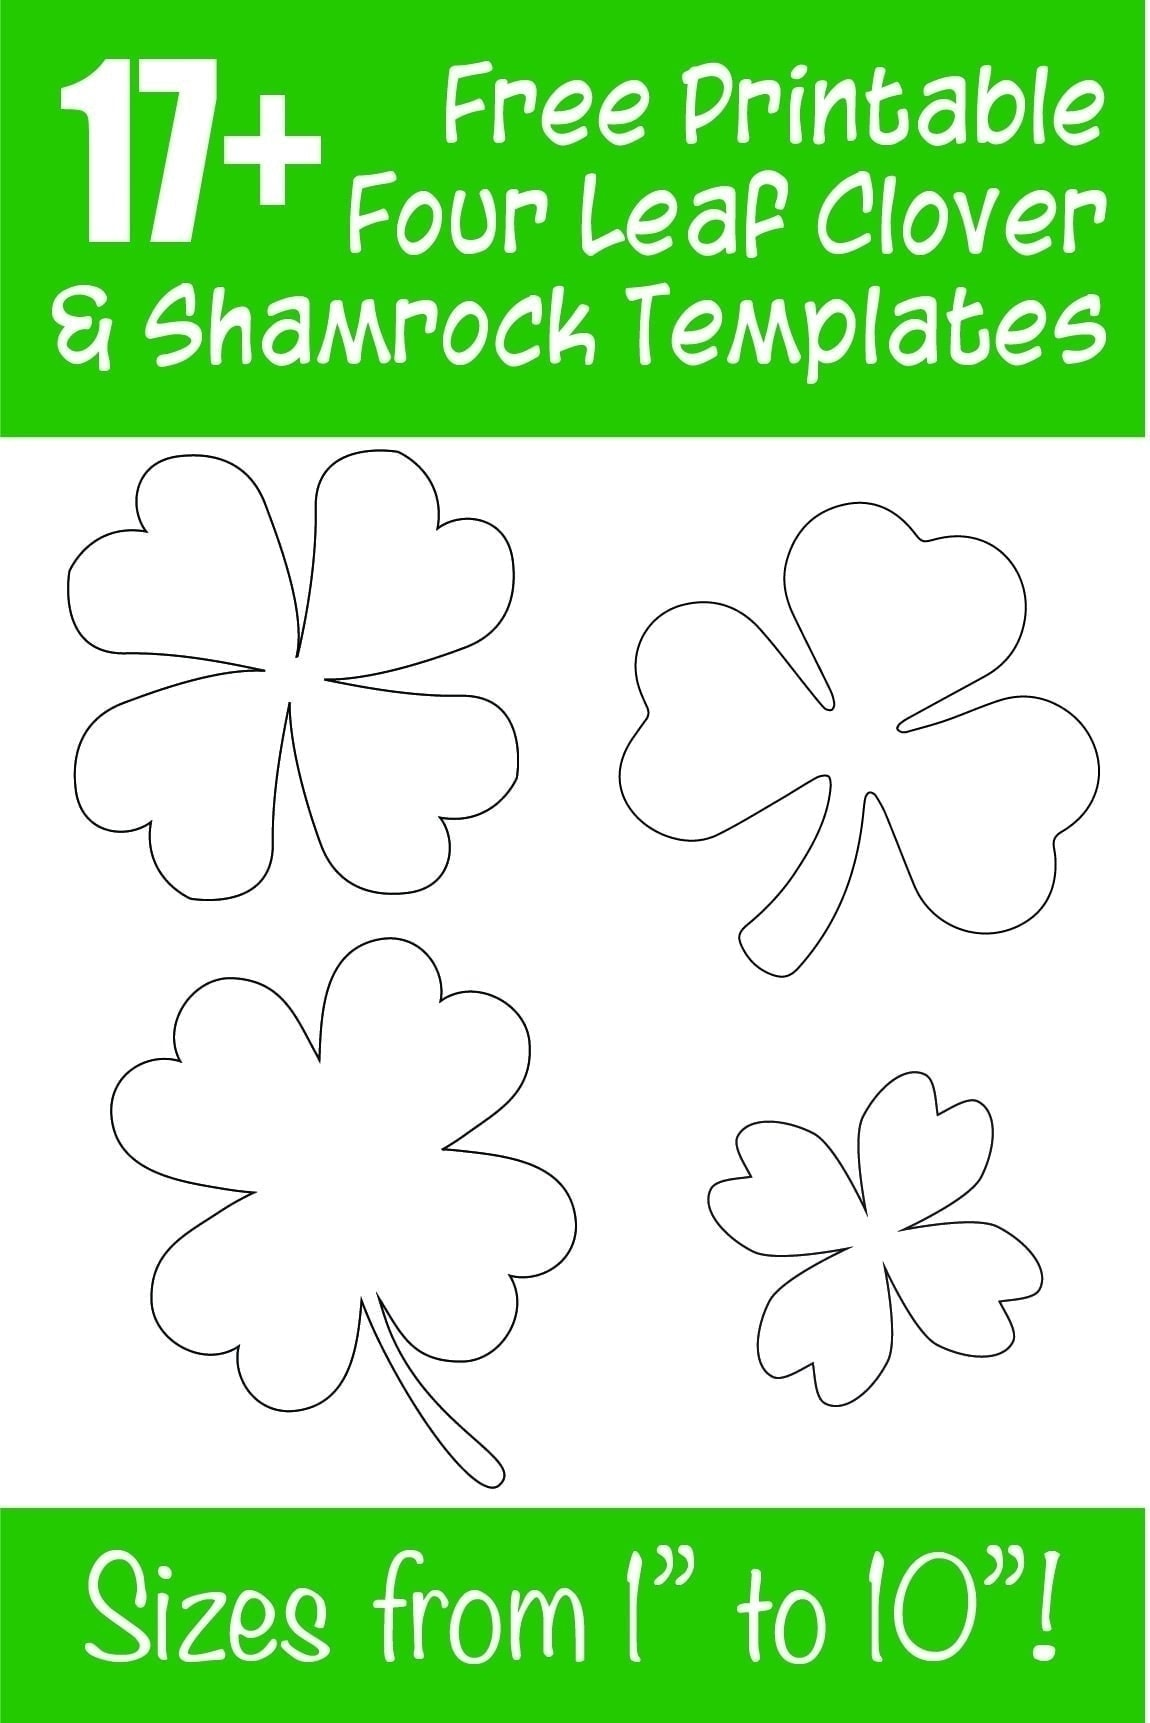 Four Leaf Clover Coloring Sheet - Coloring Home | 1723x1150